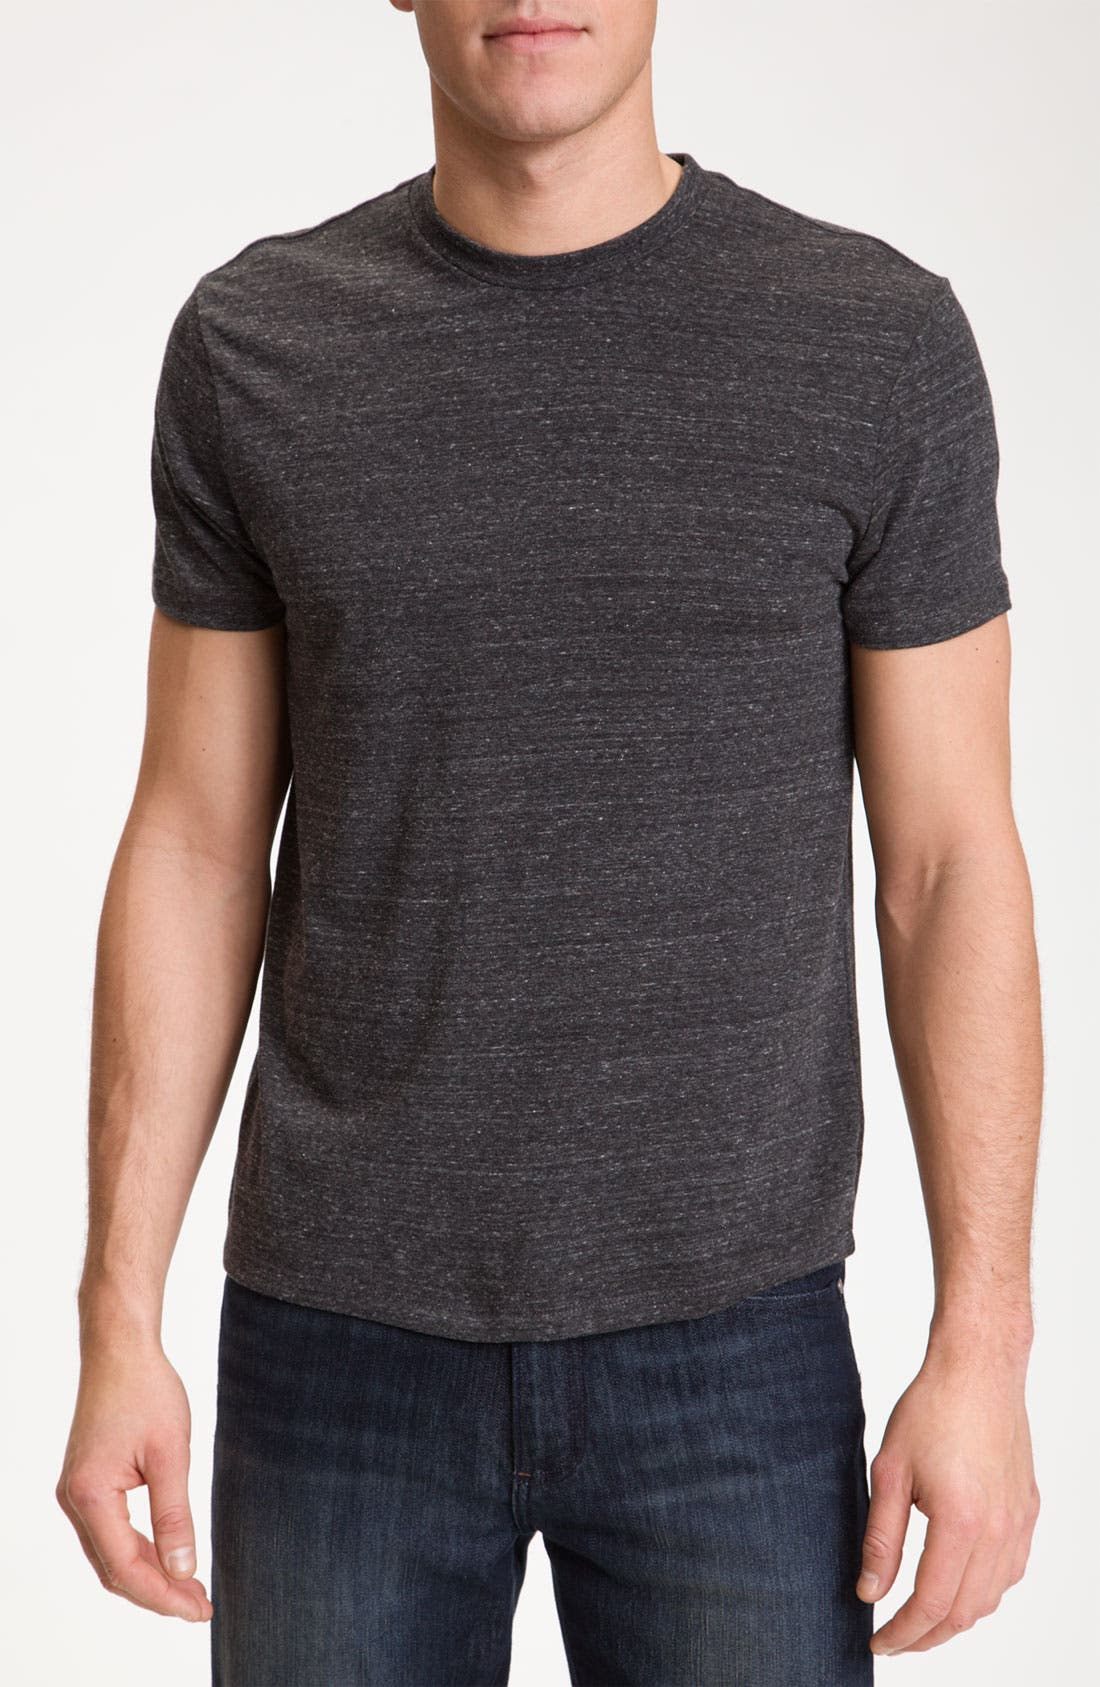 Alternate Image 1 Selected - The Rail Slim Fit Crewneck T-Shirt (2 for $30)